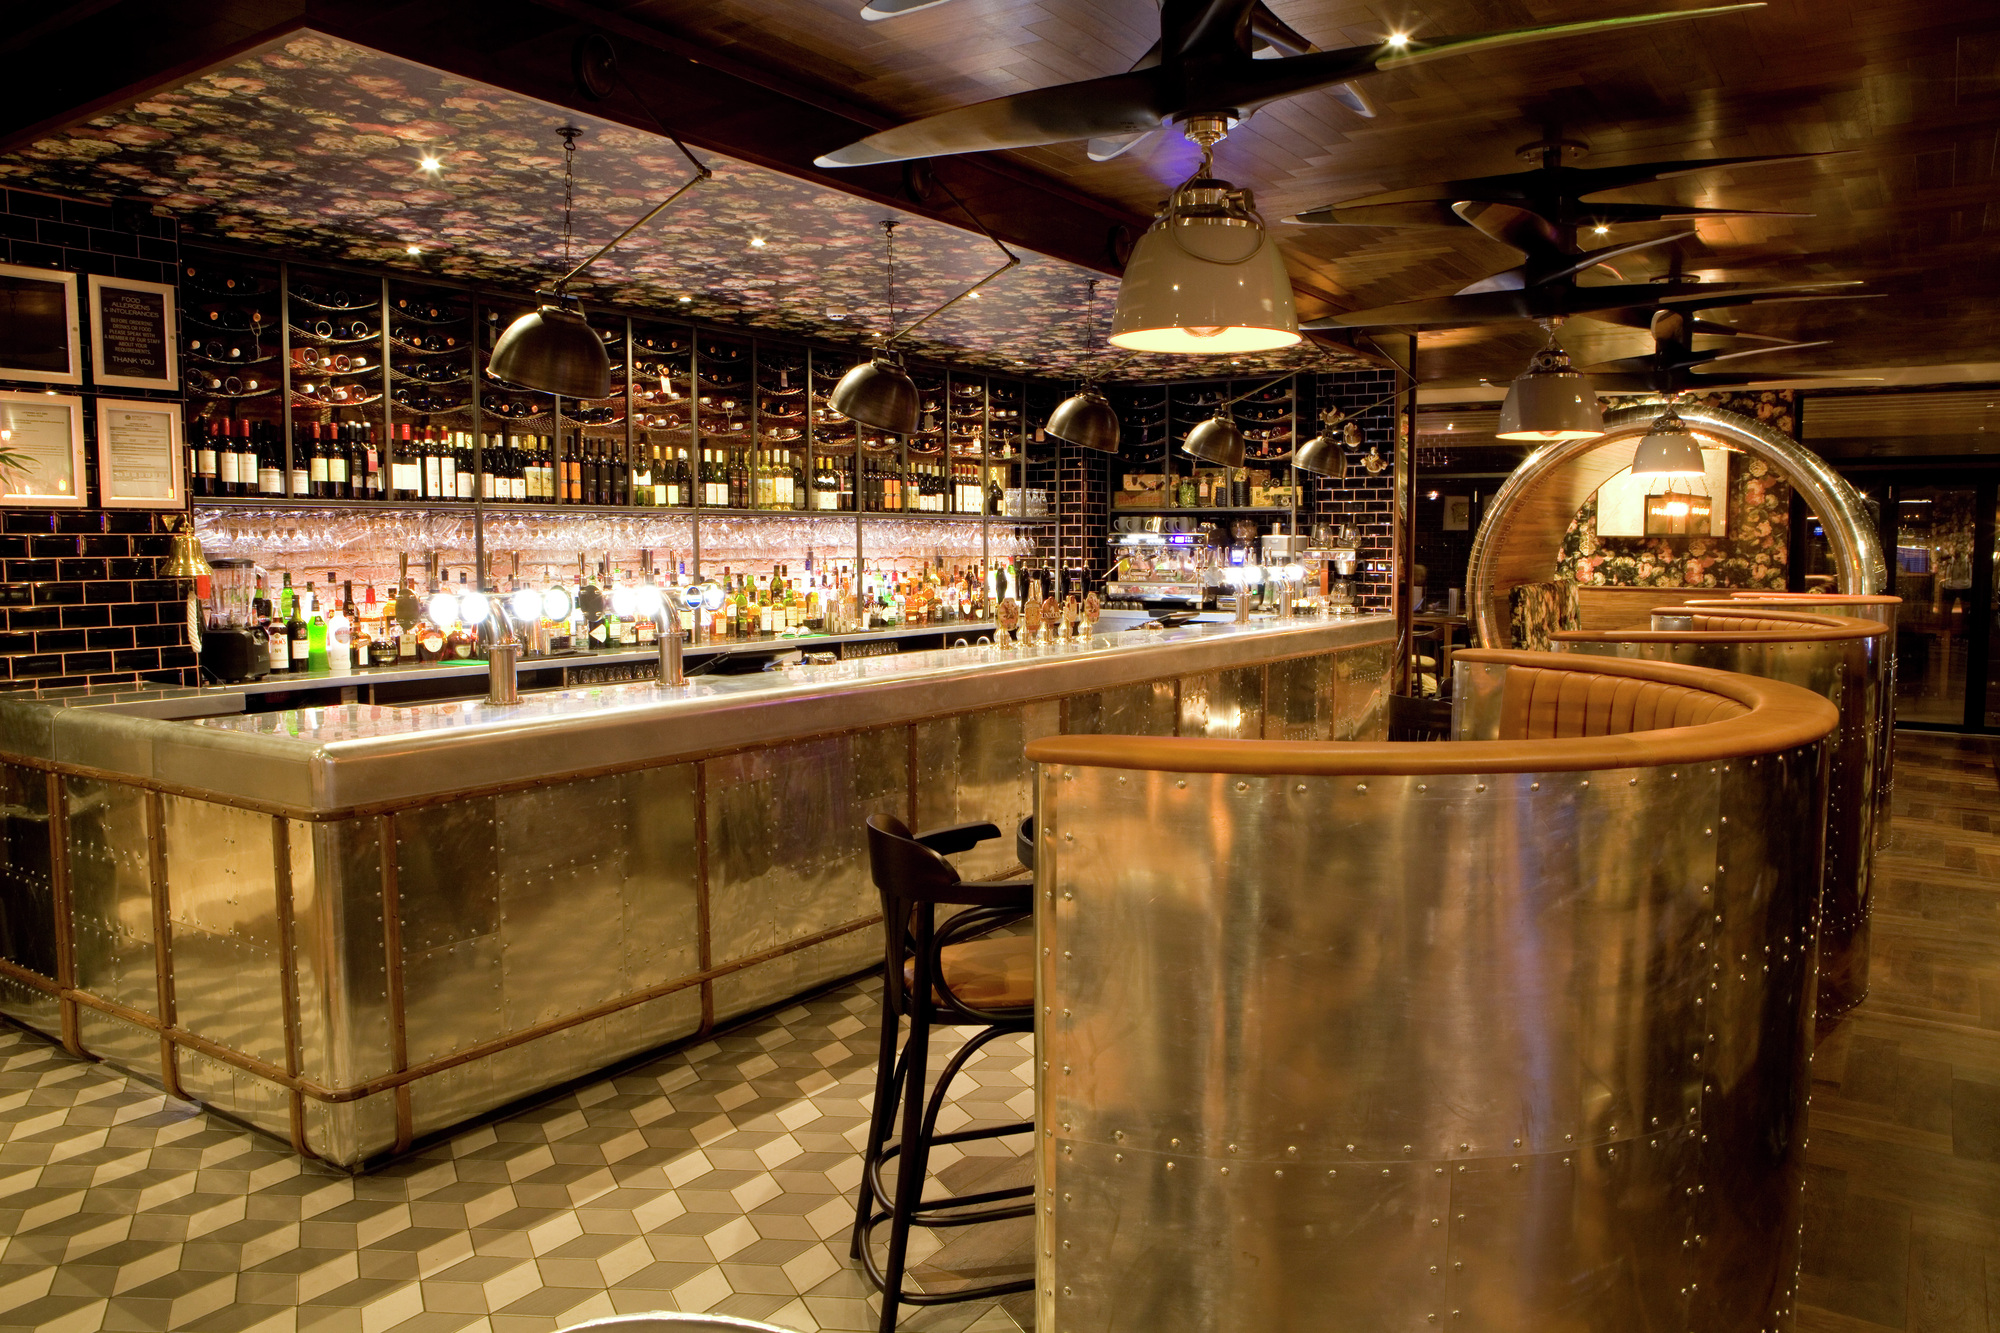 2015 Restaurant Bar Design Award Winners Announced